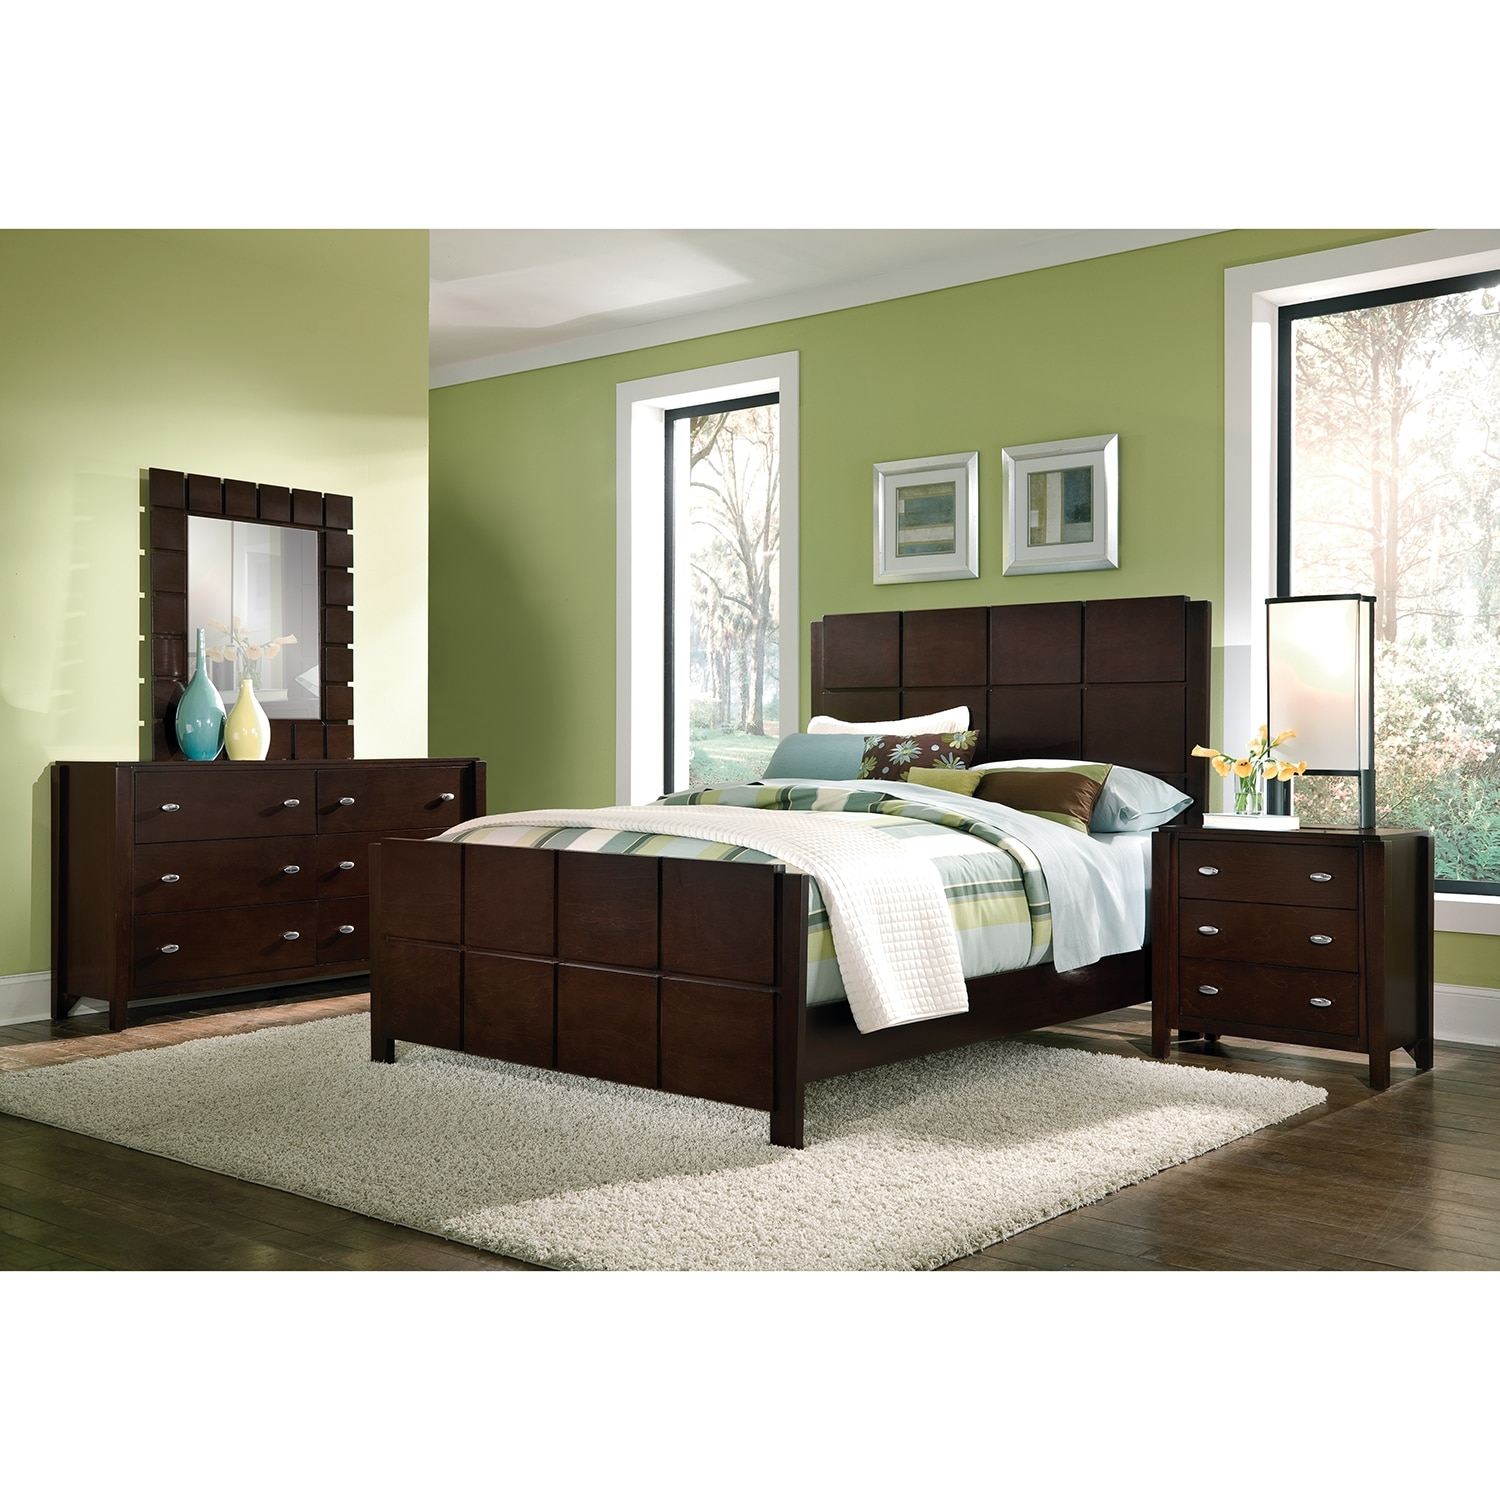 value bed furniture city and set king packages bedroom product esquire package piece merlot room